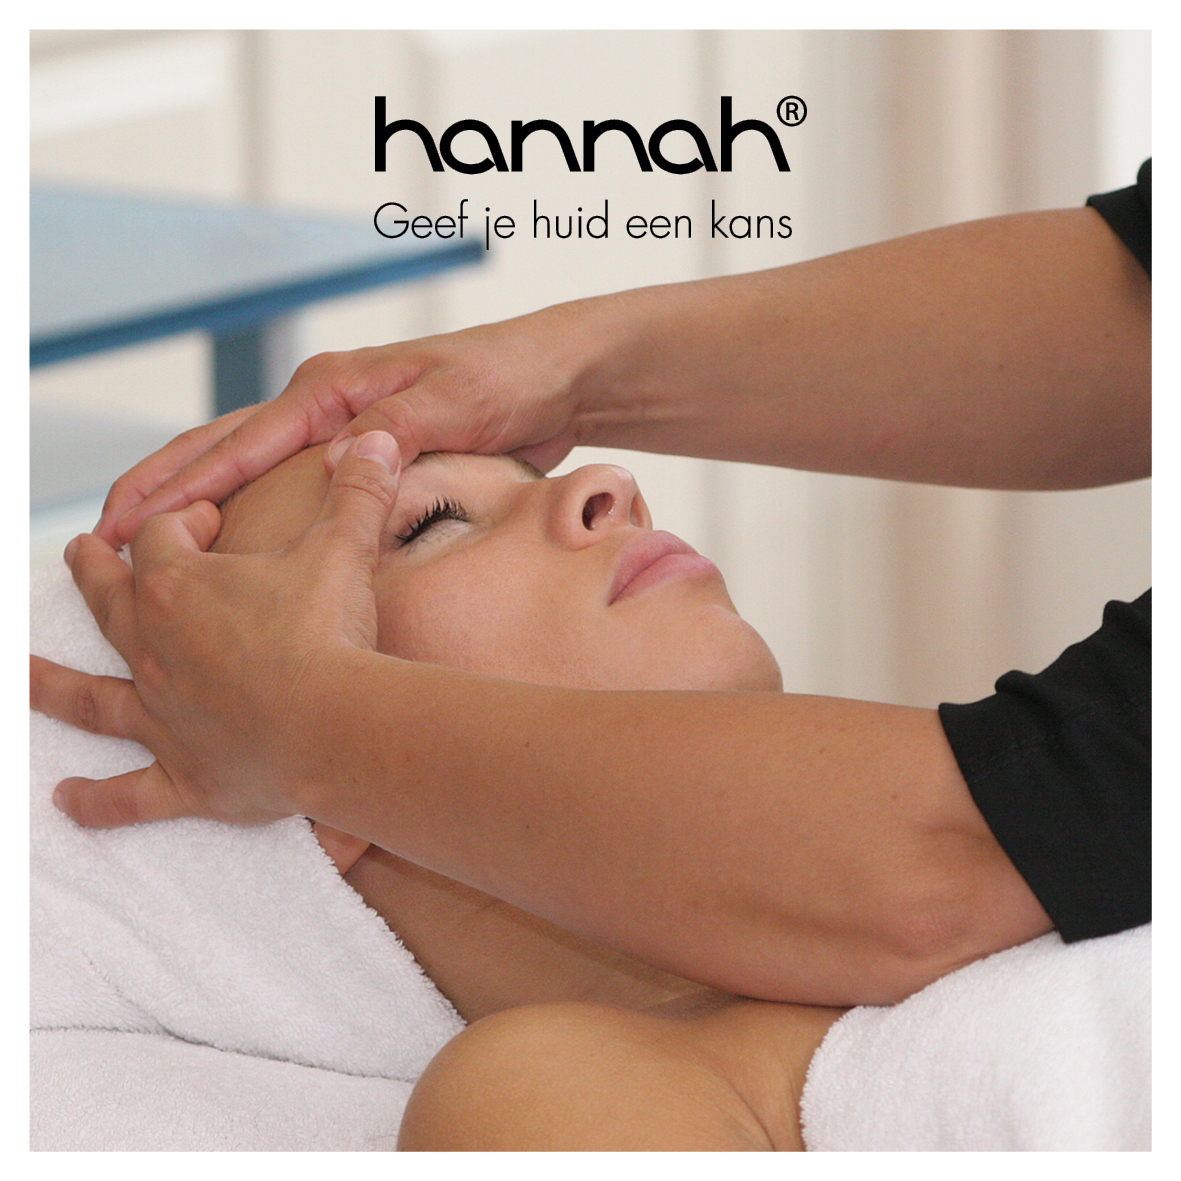 Bindweefselmassage best - hannah bindweefselmassage best - hannah huidcoach best - huidmeting in best bij de huidcoach - Sun en More